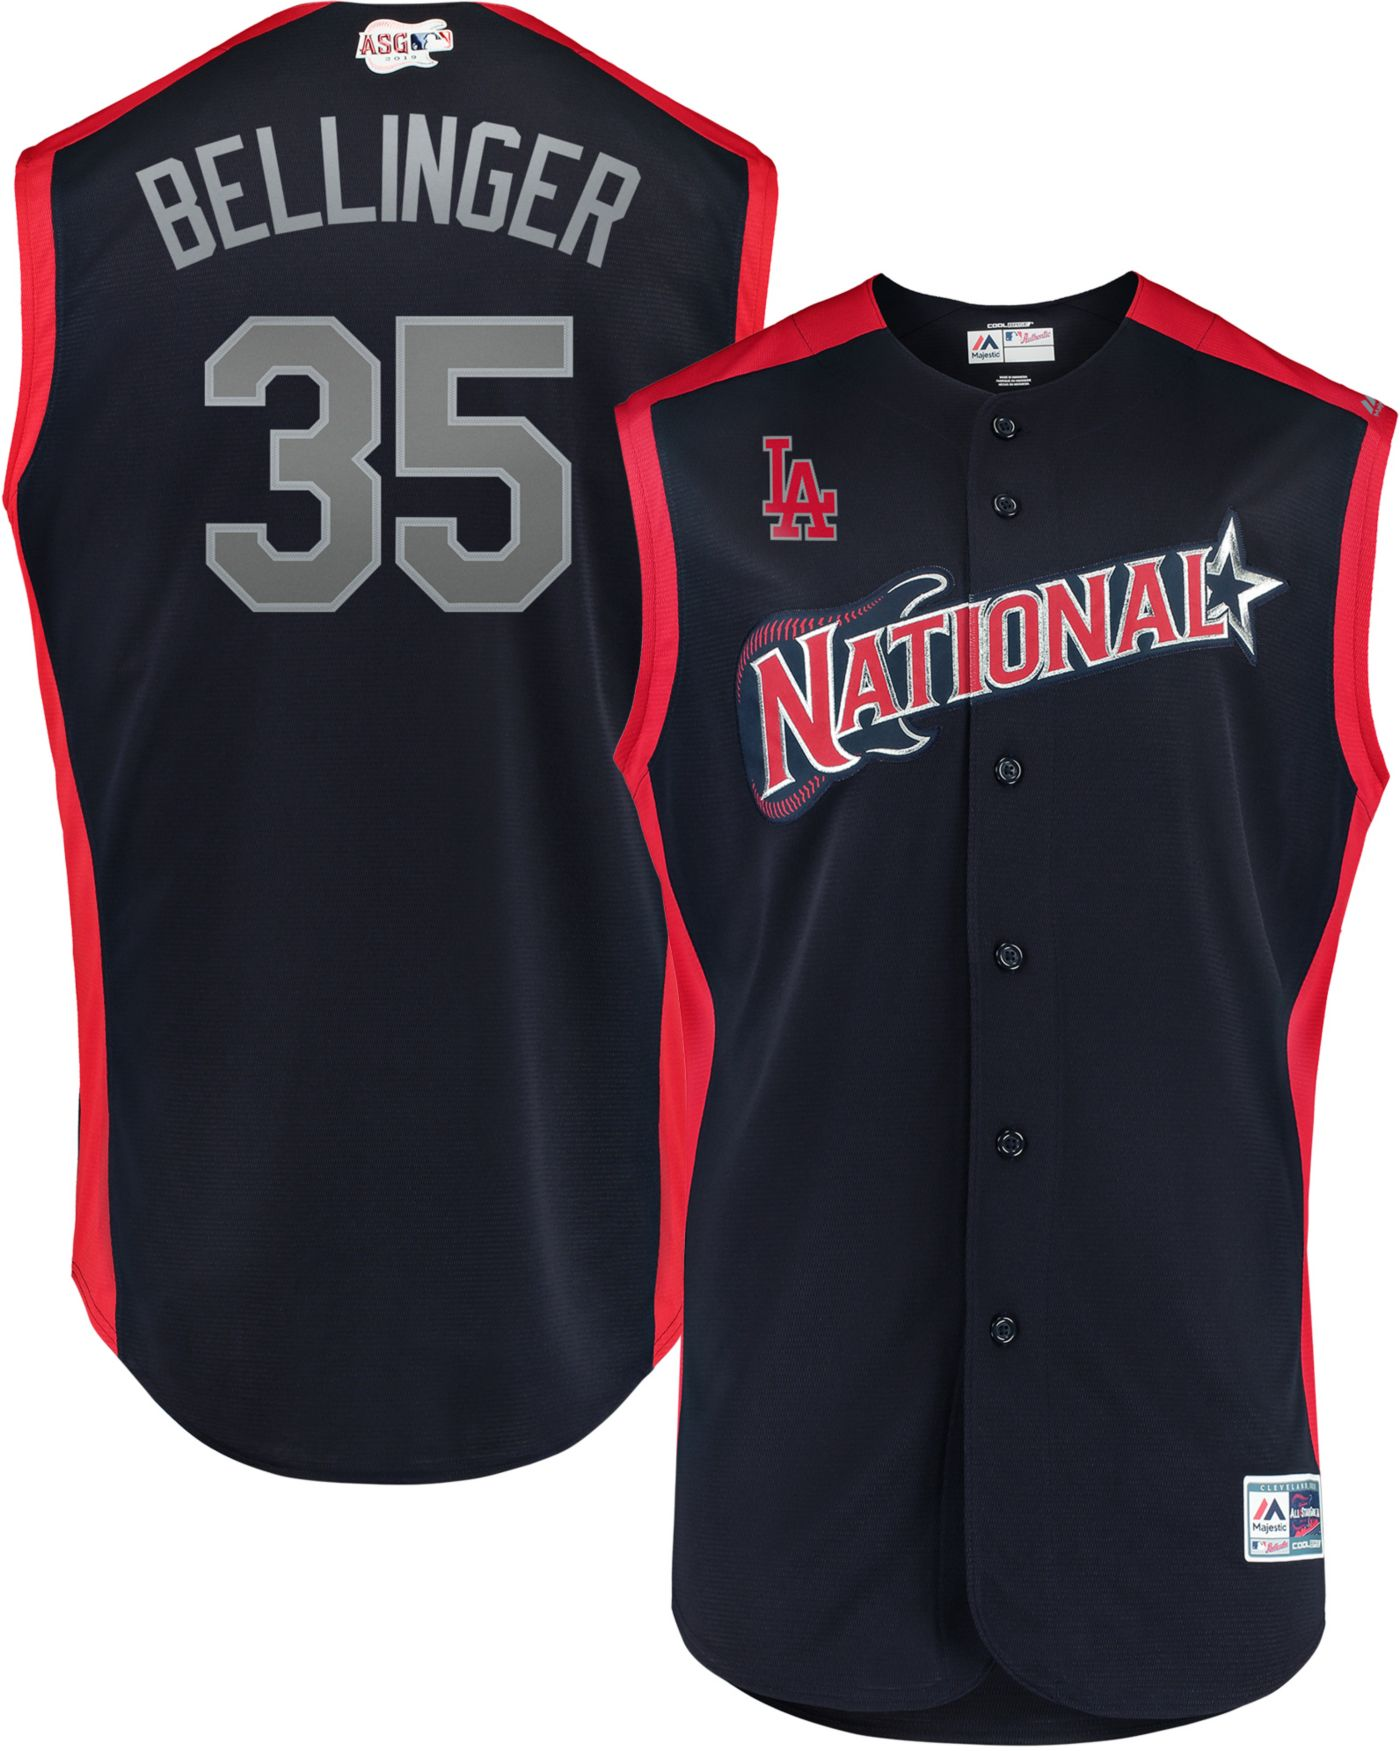 Majestic Men's 2019 National League Cody Bellinger #35 All-Star Game Cool Base Jersey